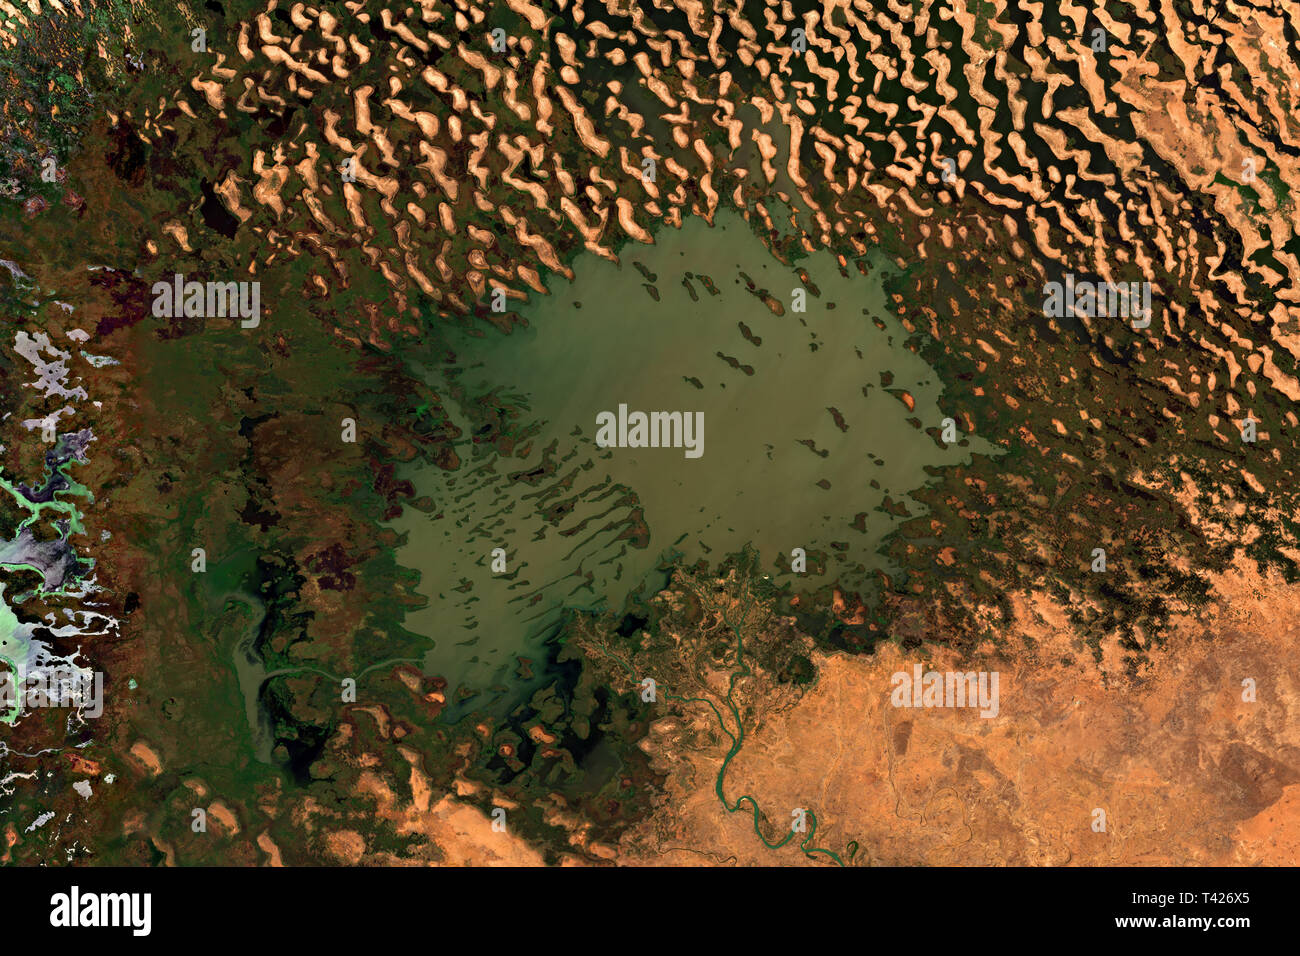 Lake Chad in Africa seen from space - contains modified Copernicus Sentinel Data (2019) - Stock Image